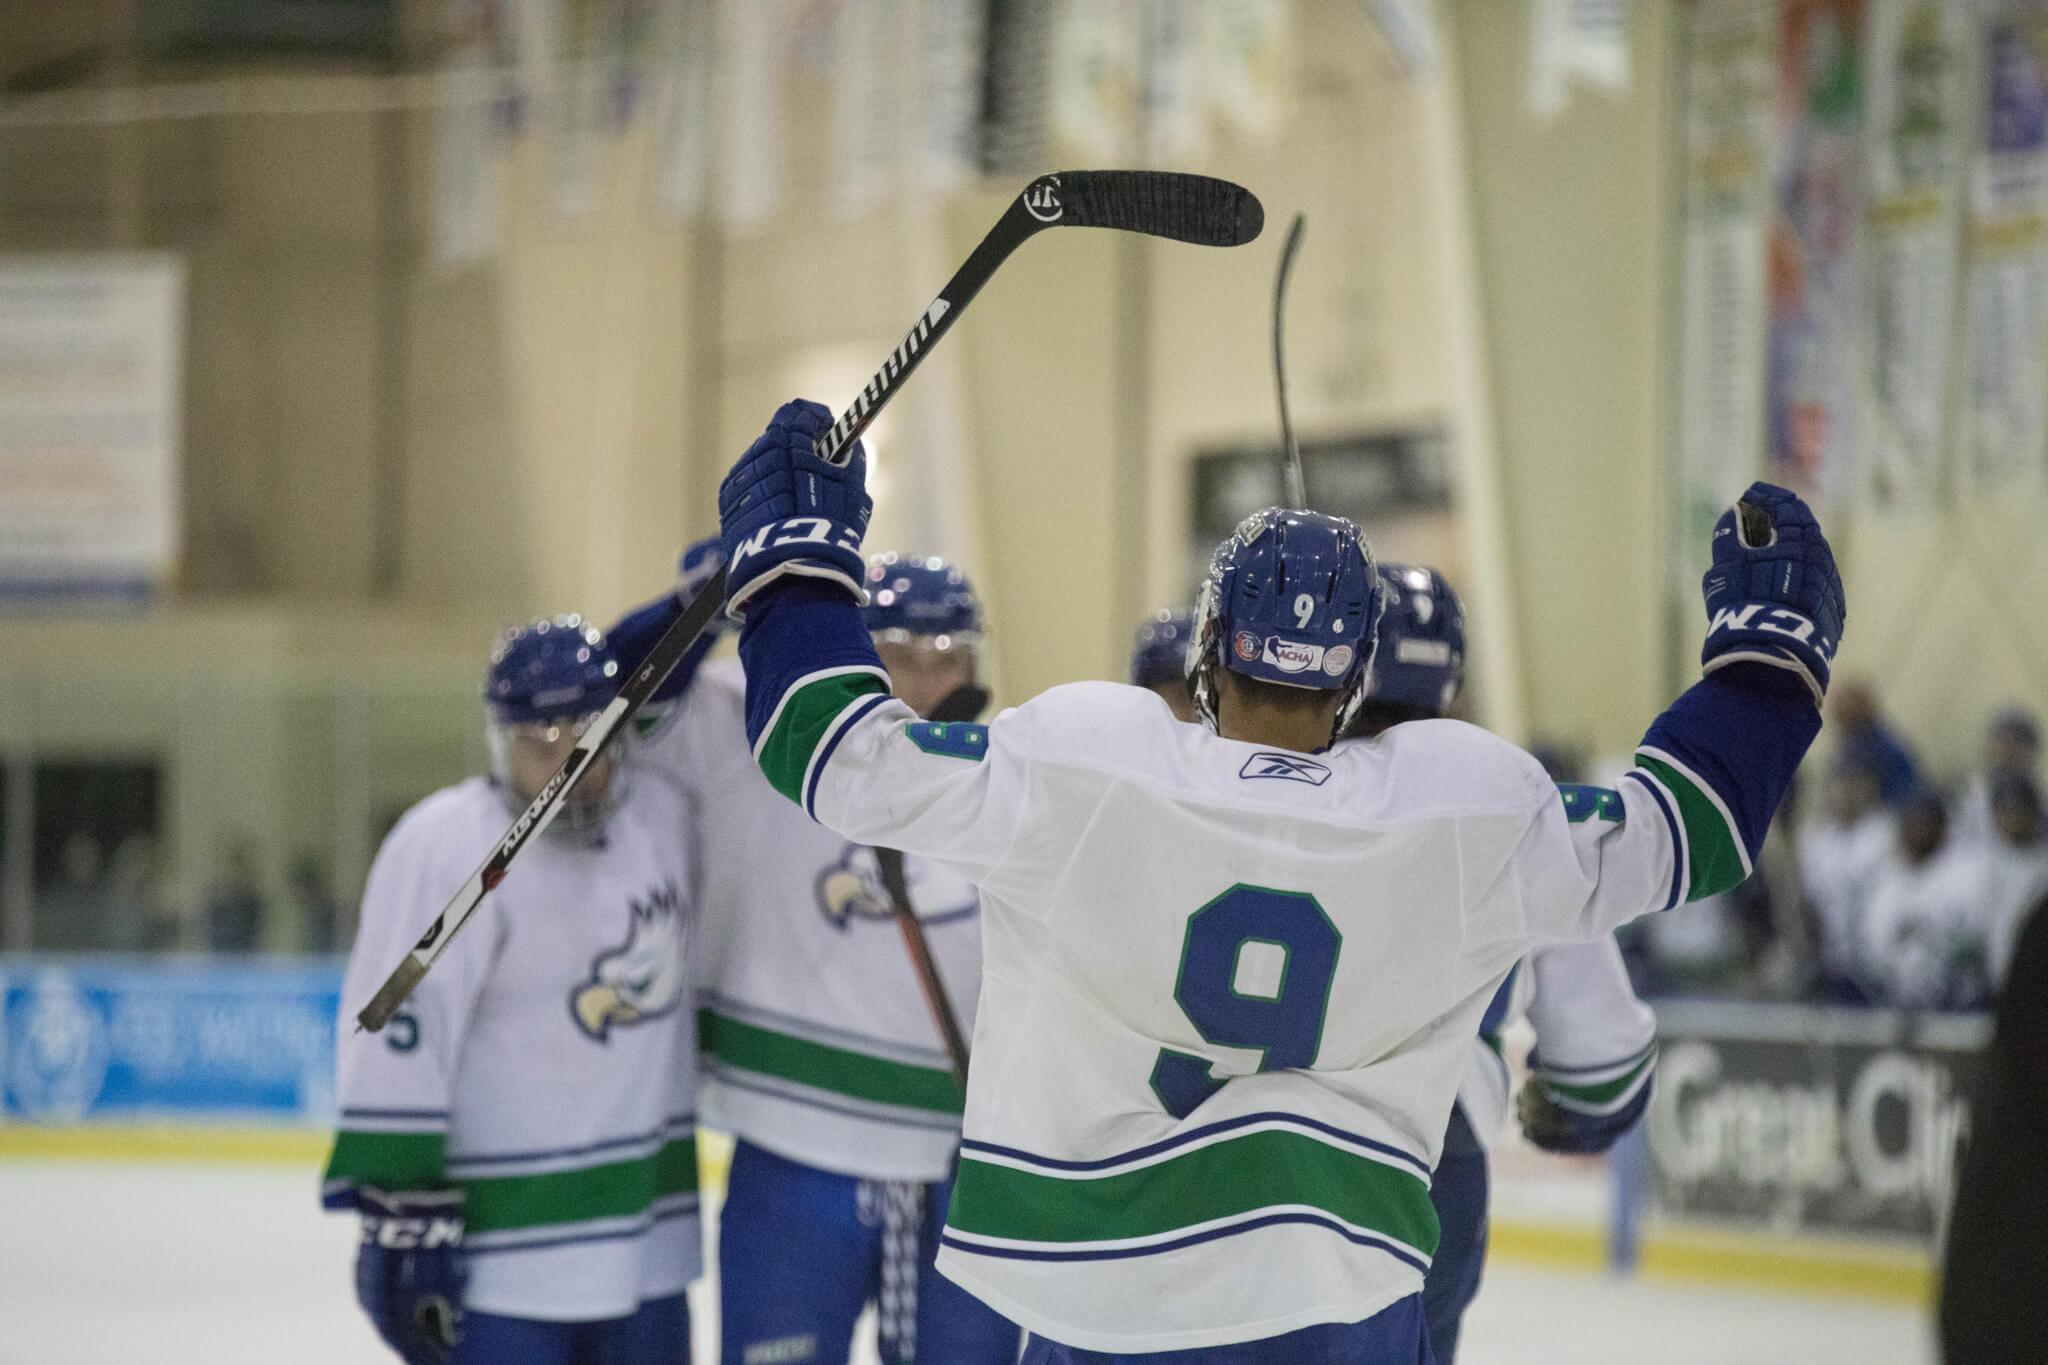 FGCU DII hockey ends regular season unbeaten at home